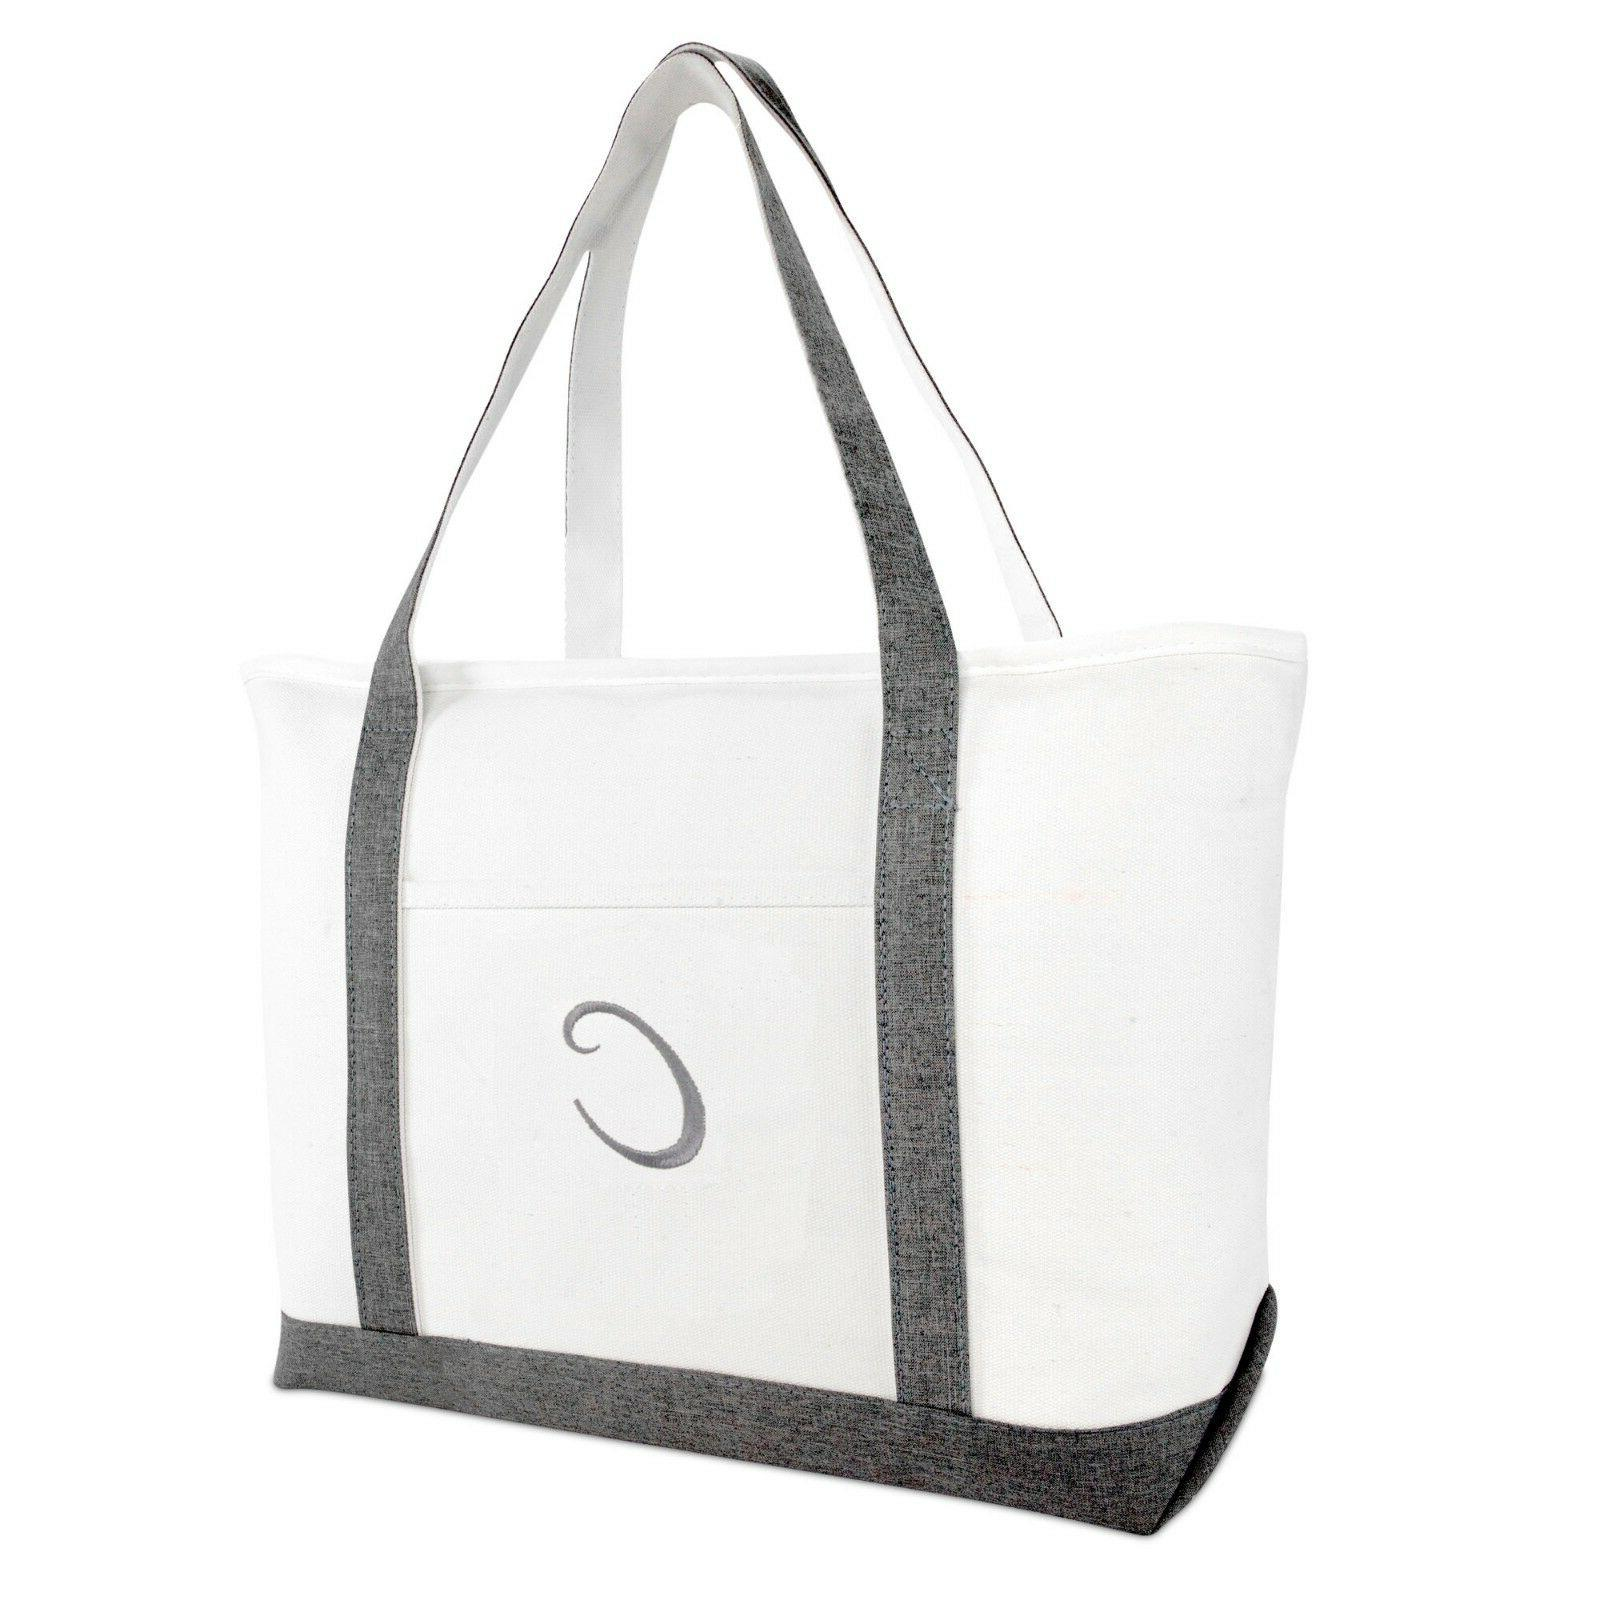 DALIX Gray Beach Tote Bag Personalized Gifts Women Shoulder